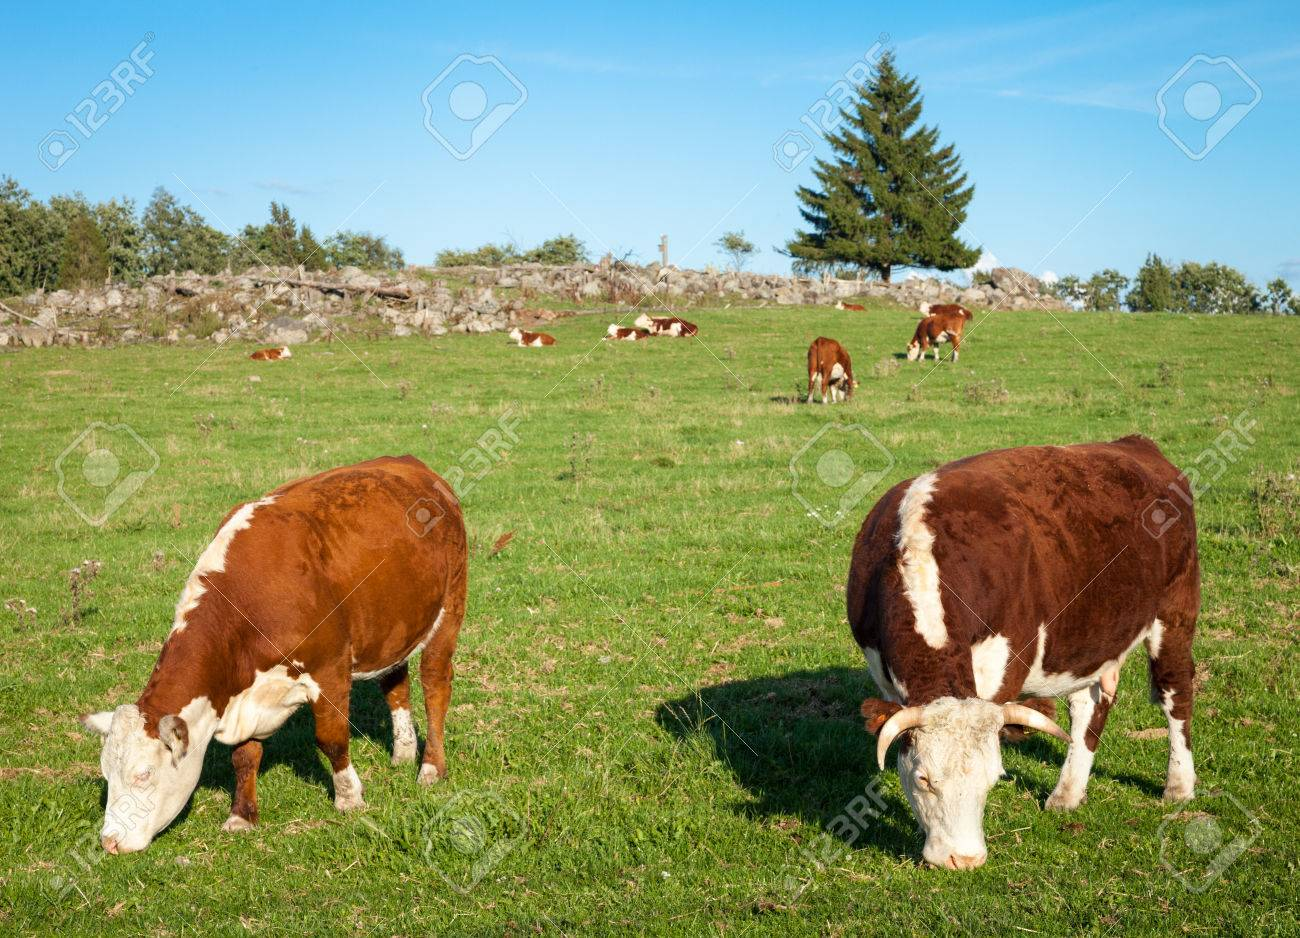 Two Hereford cows eating hay and grazing on the meadow. Stock Photo - 24816257